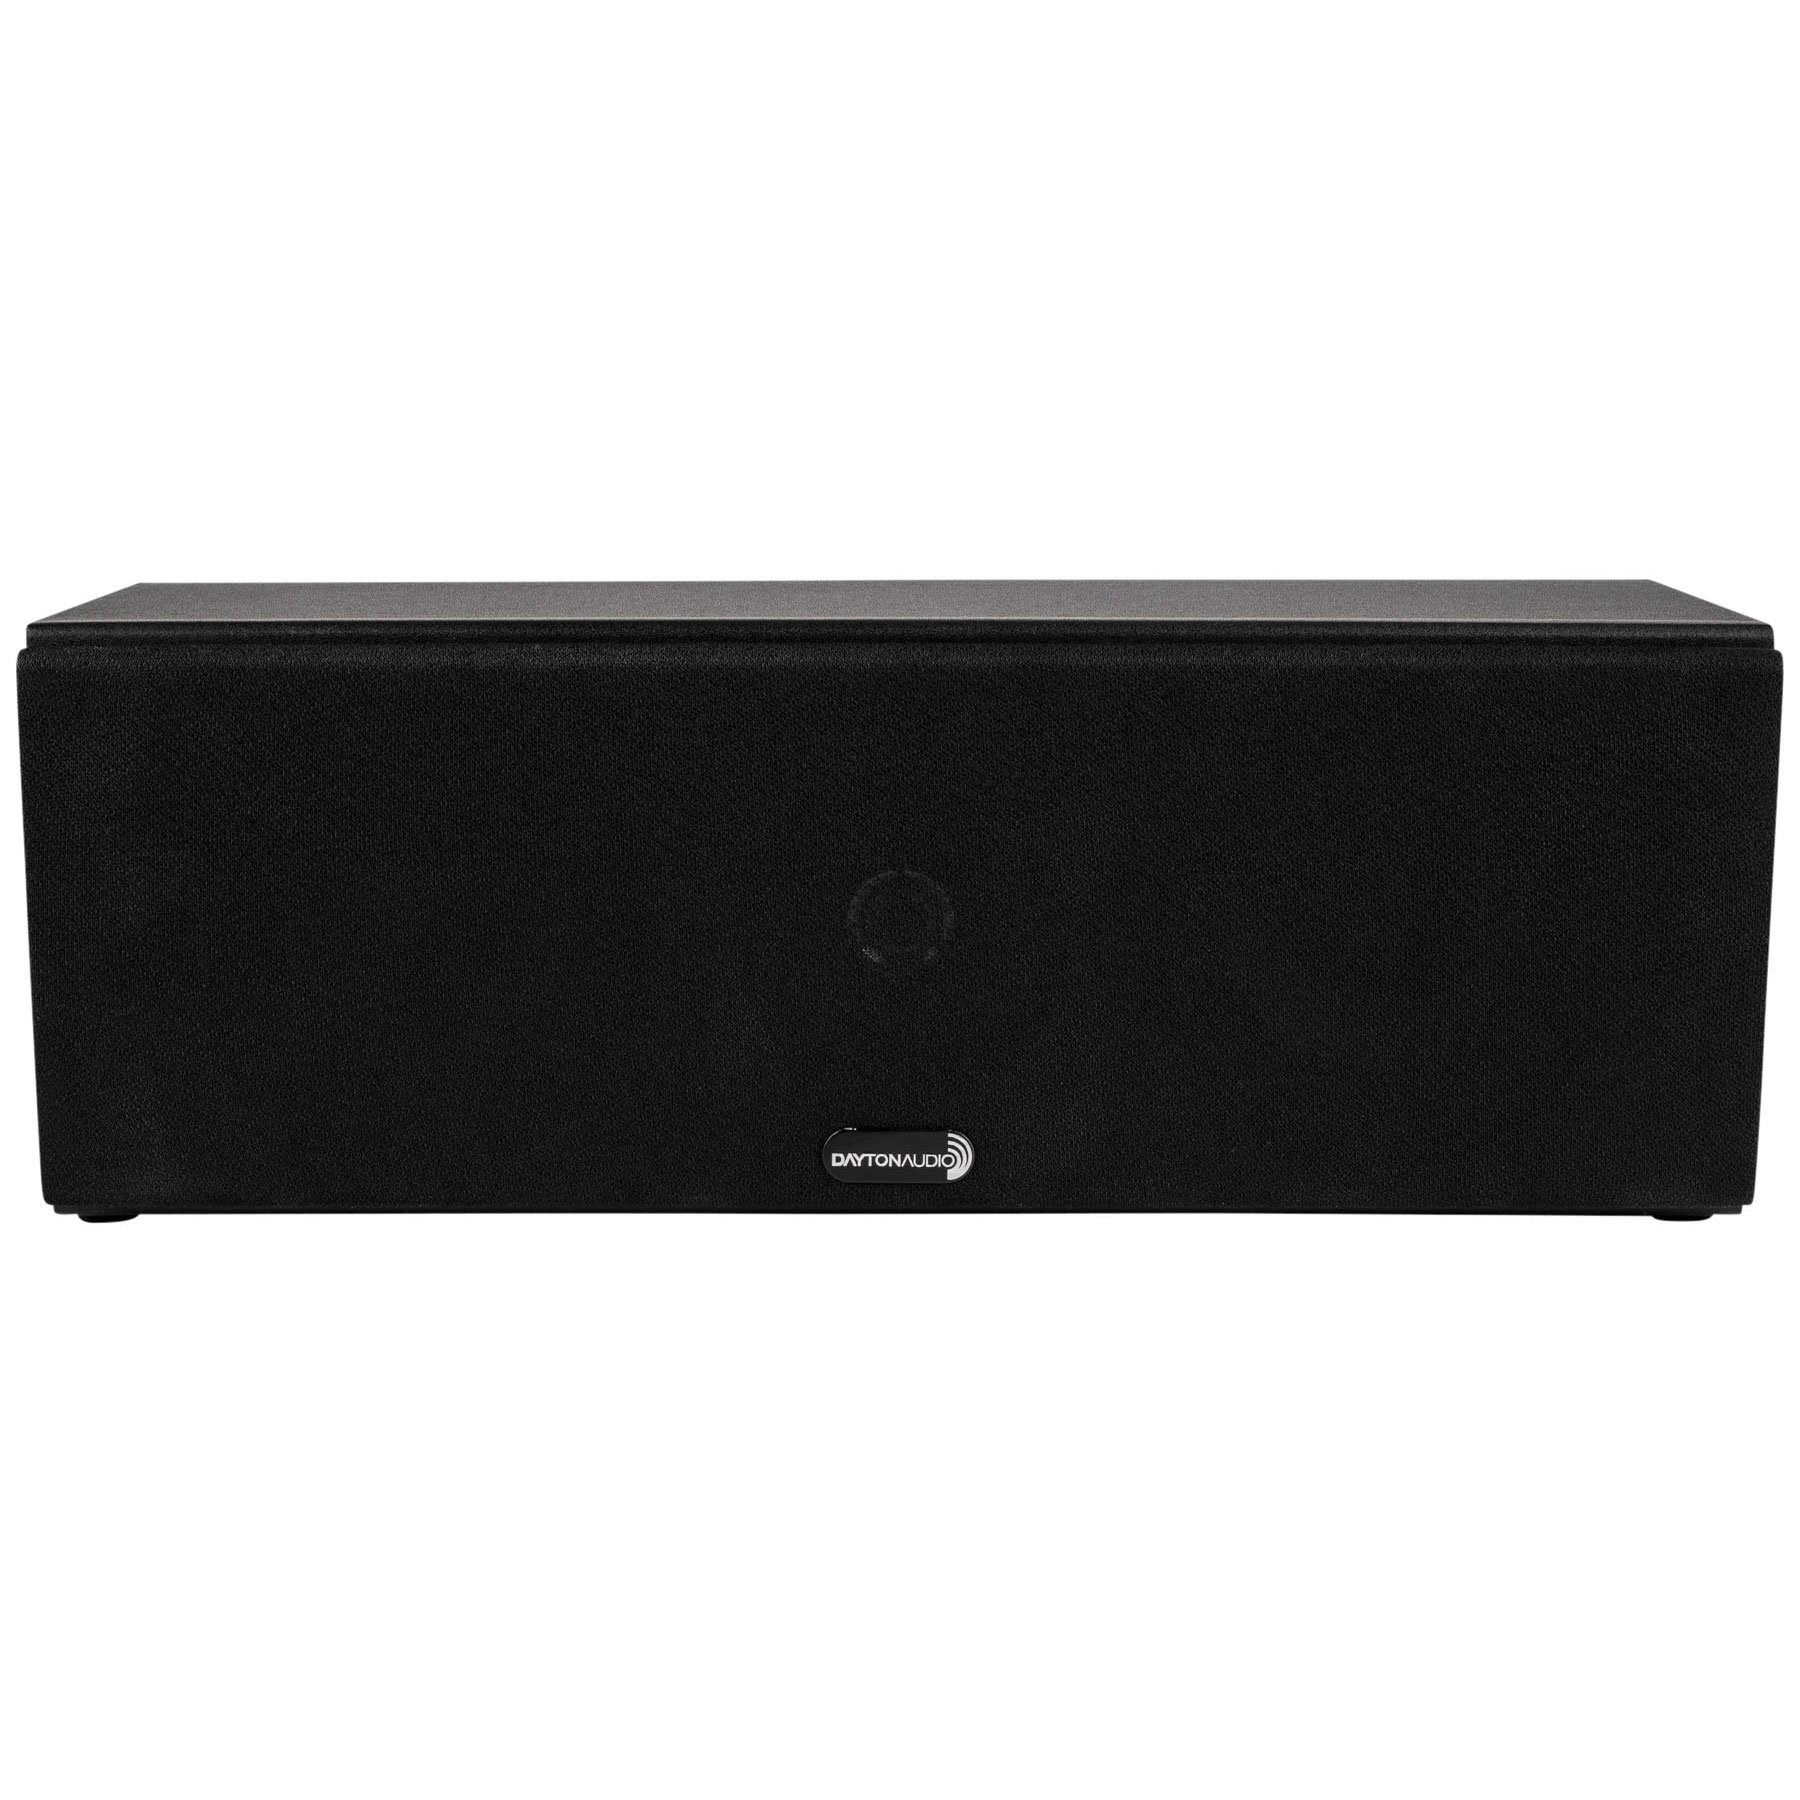 Dayton Audio C452 Dual 4-1/2'' 2-Way Center Channel Speaker (Black) by Dayton Audio